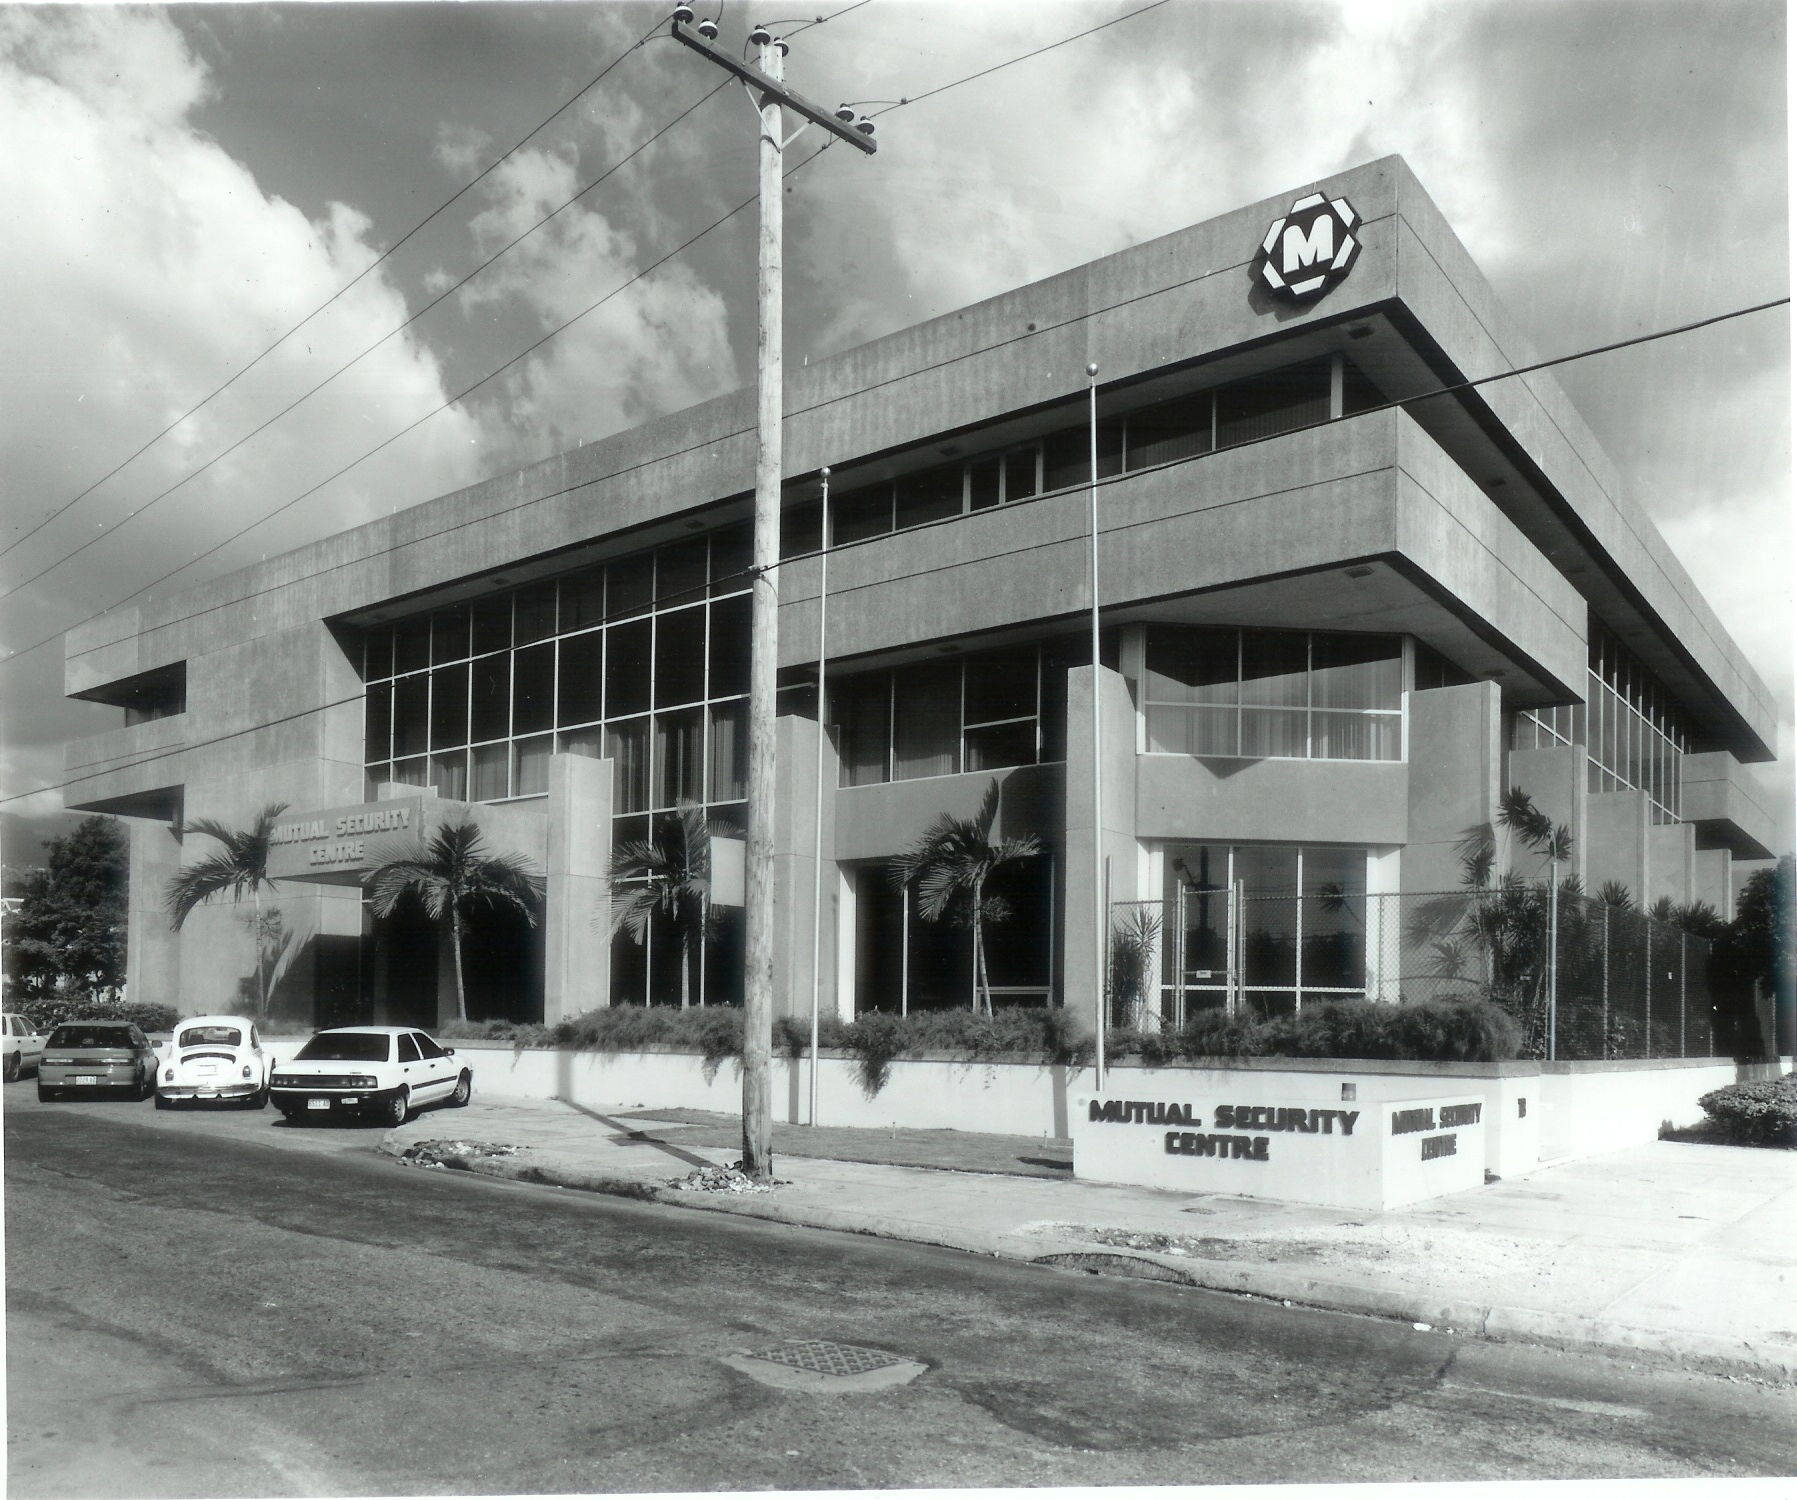 MUTUAL SECURITY CENTRE (NOW JAMPRO) (MSR ARCHITECTS)